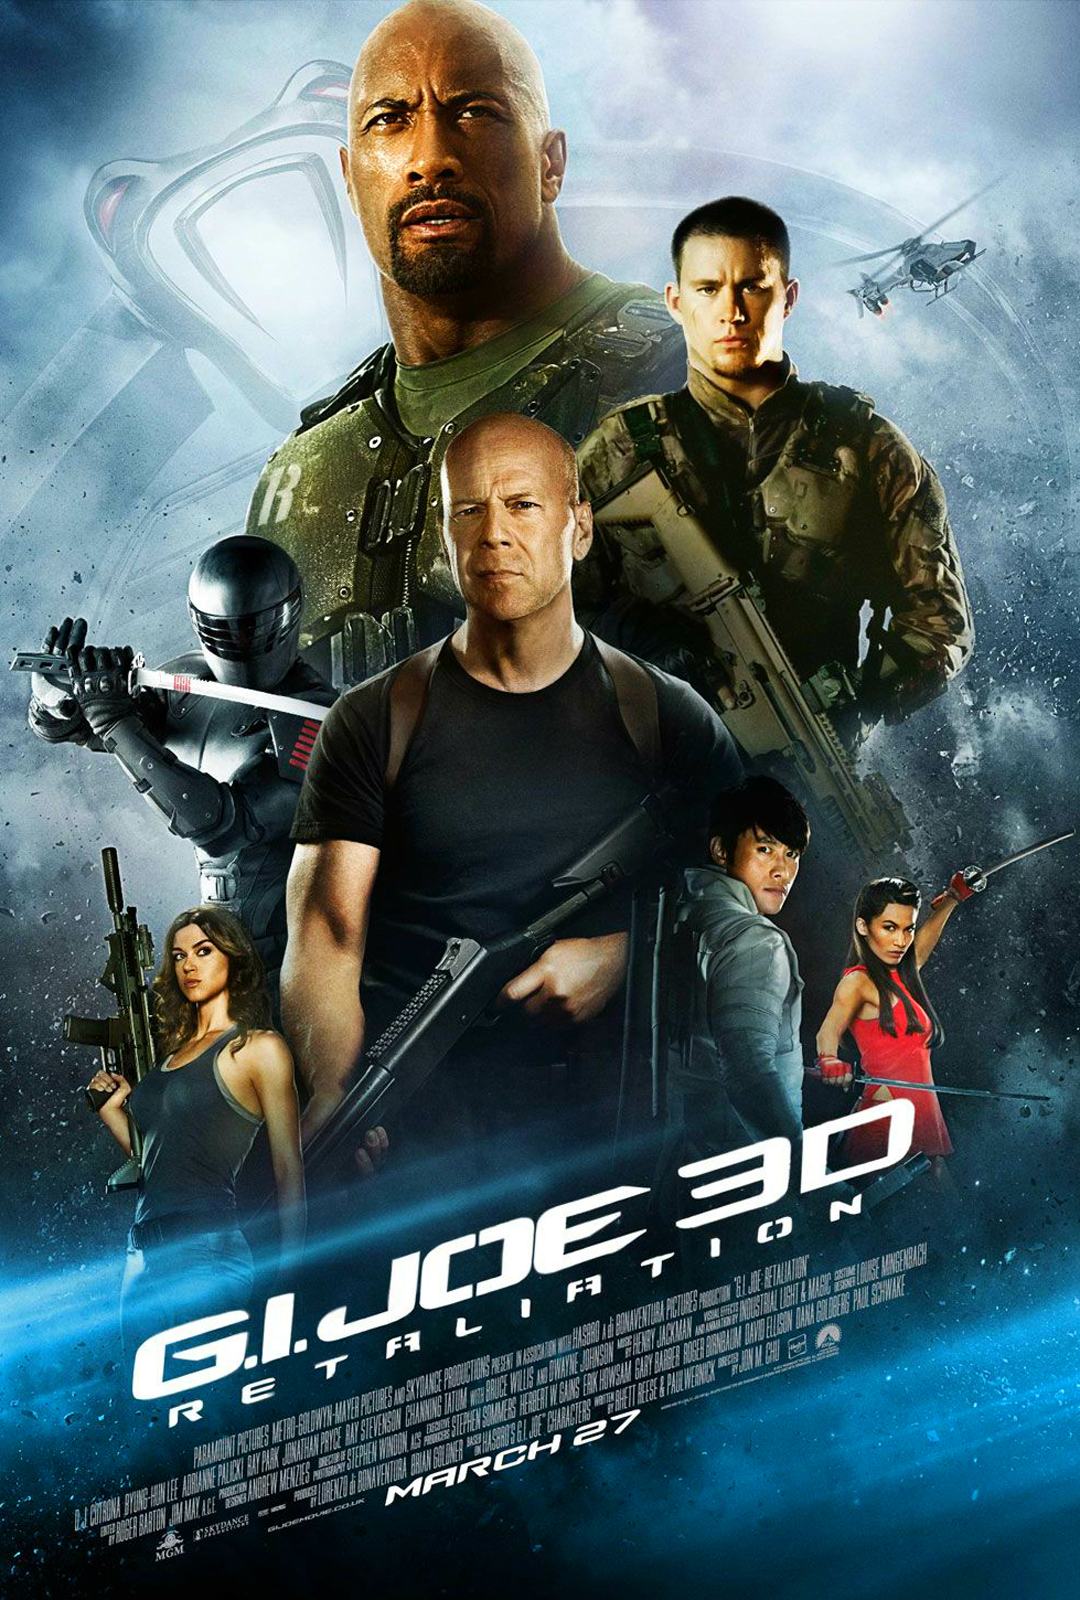 G.I. JOE: RETALIATION Final Theatrical One Sheet